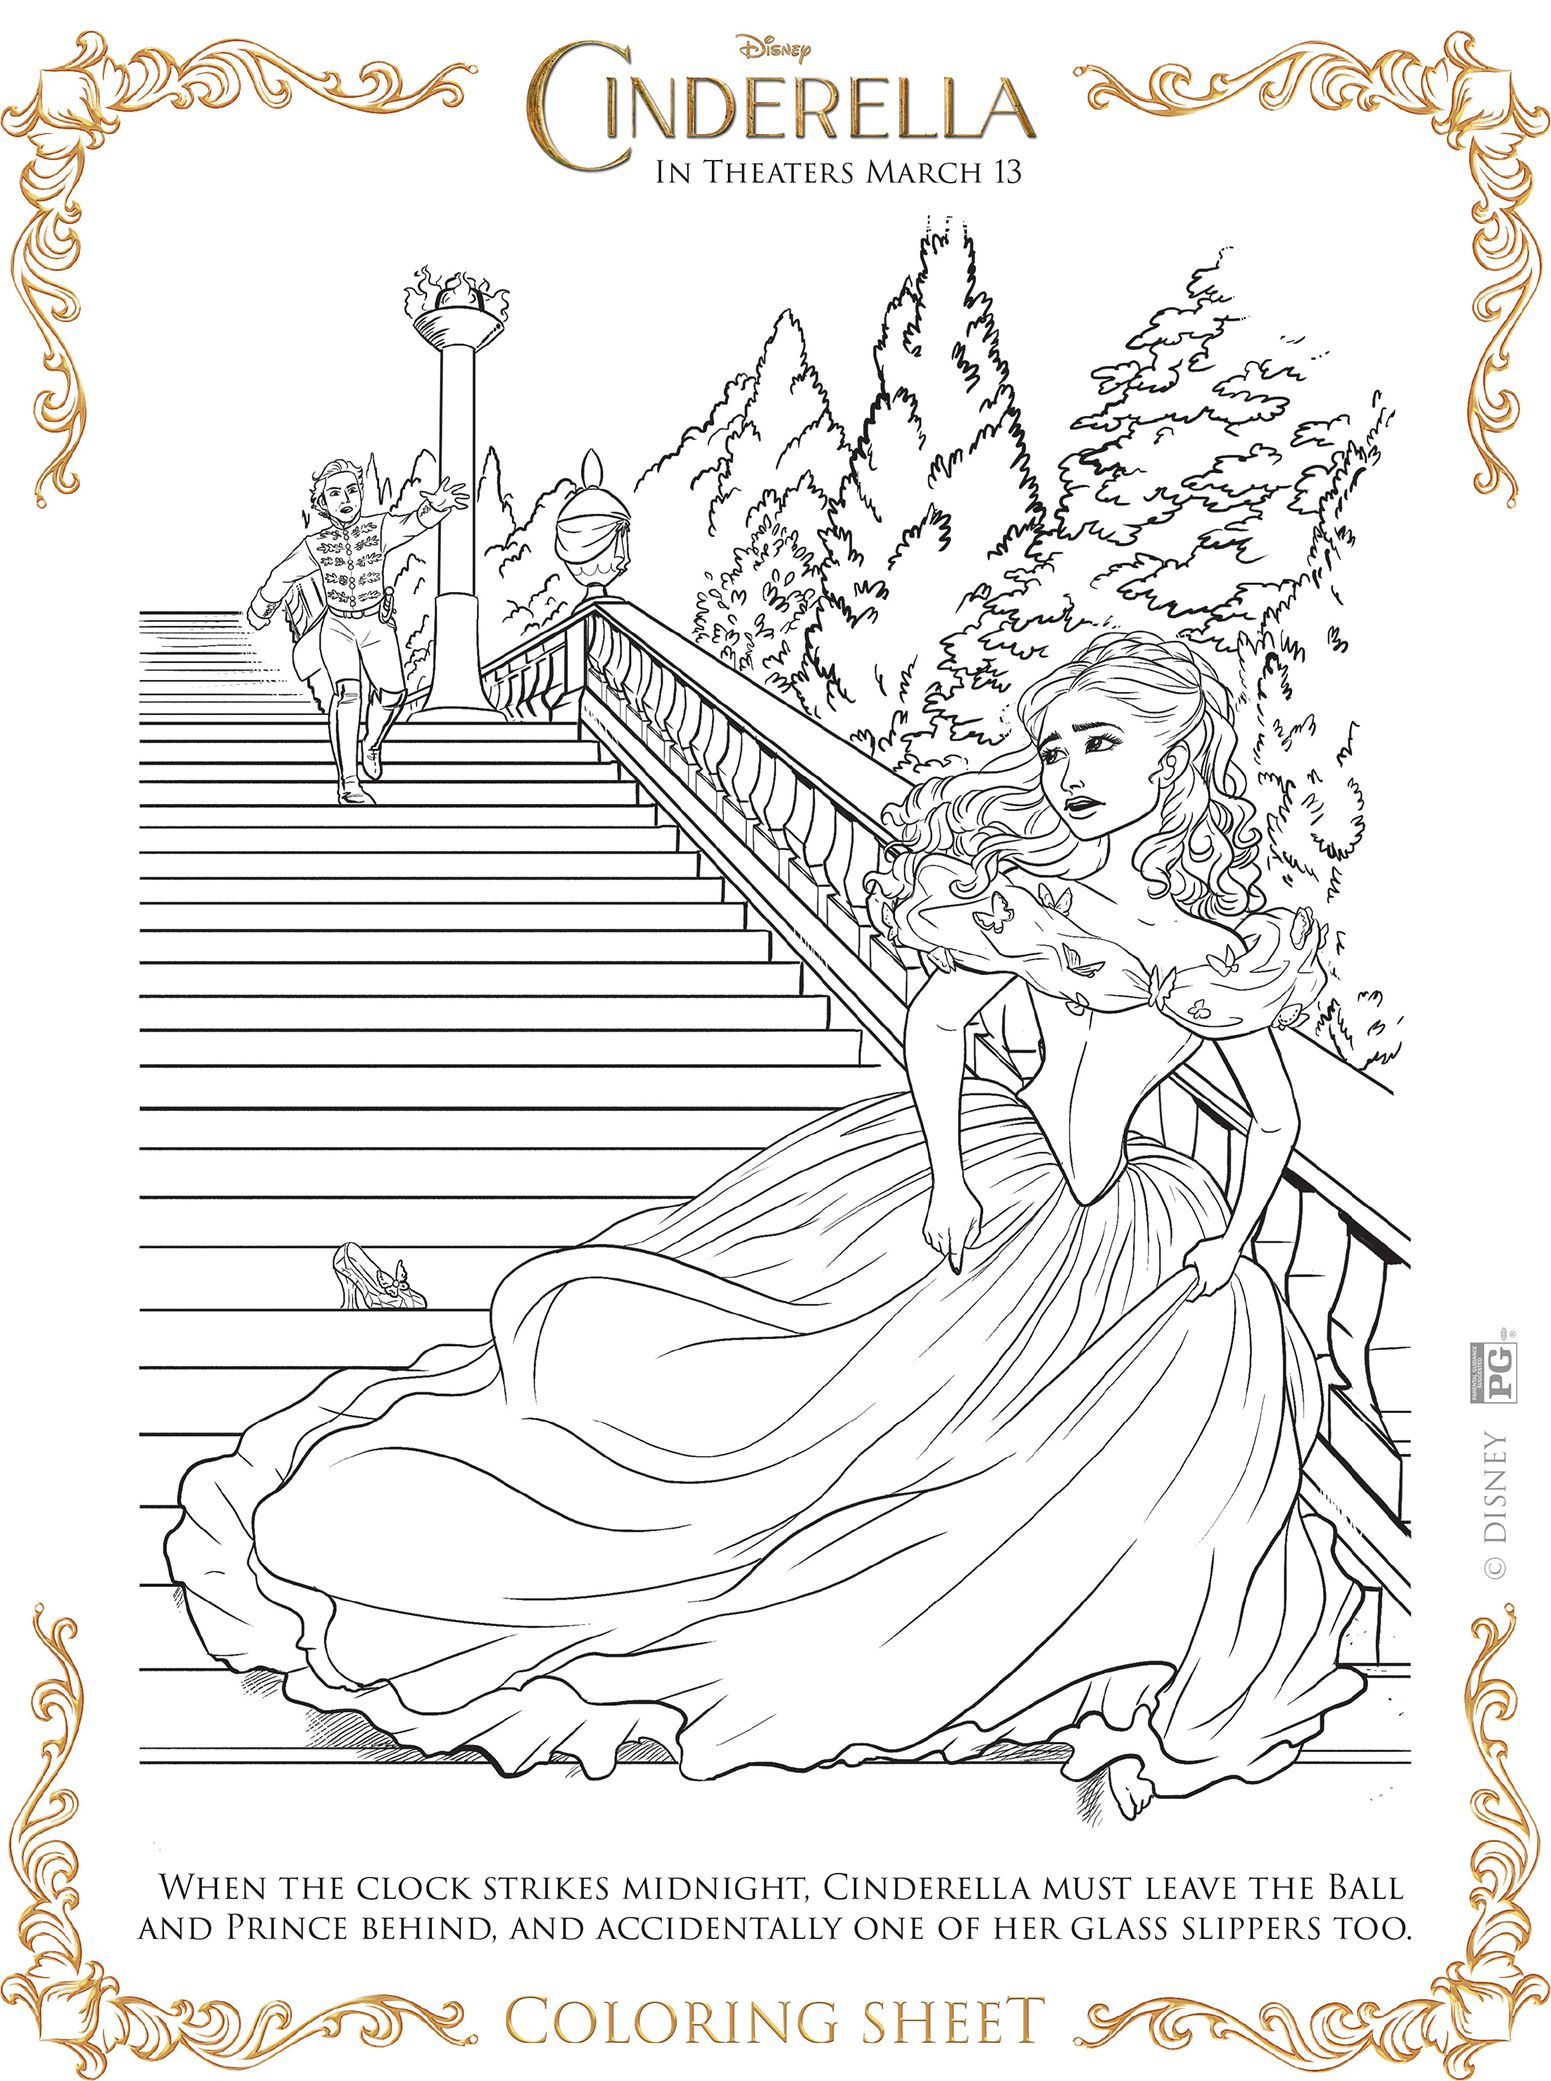 Cinderella Printables Disney live Cinderella movie and Live action